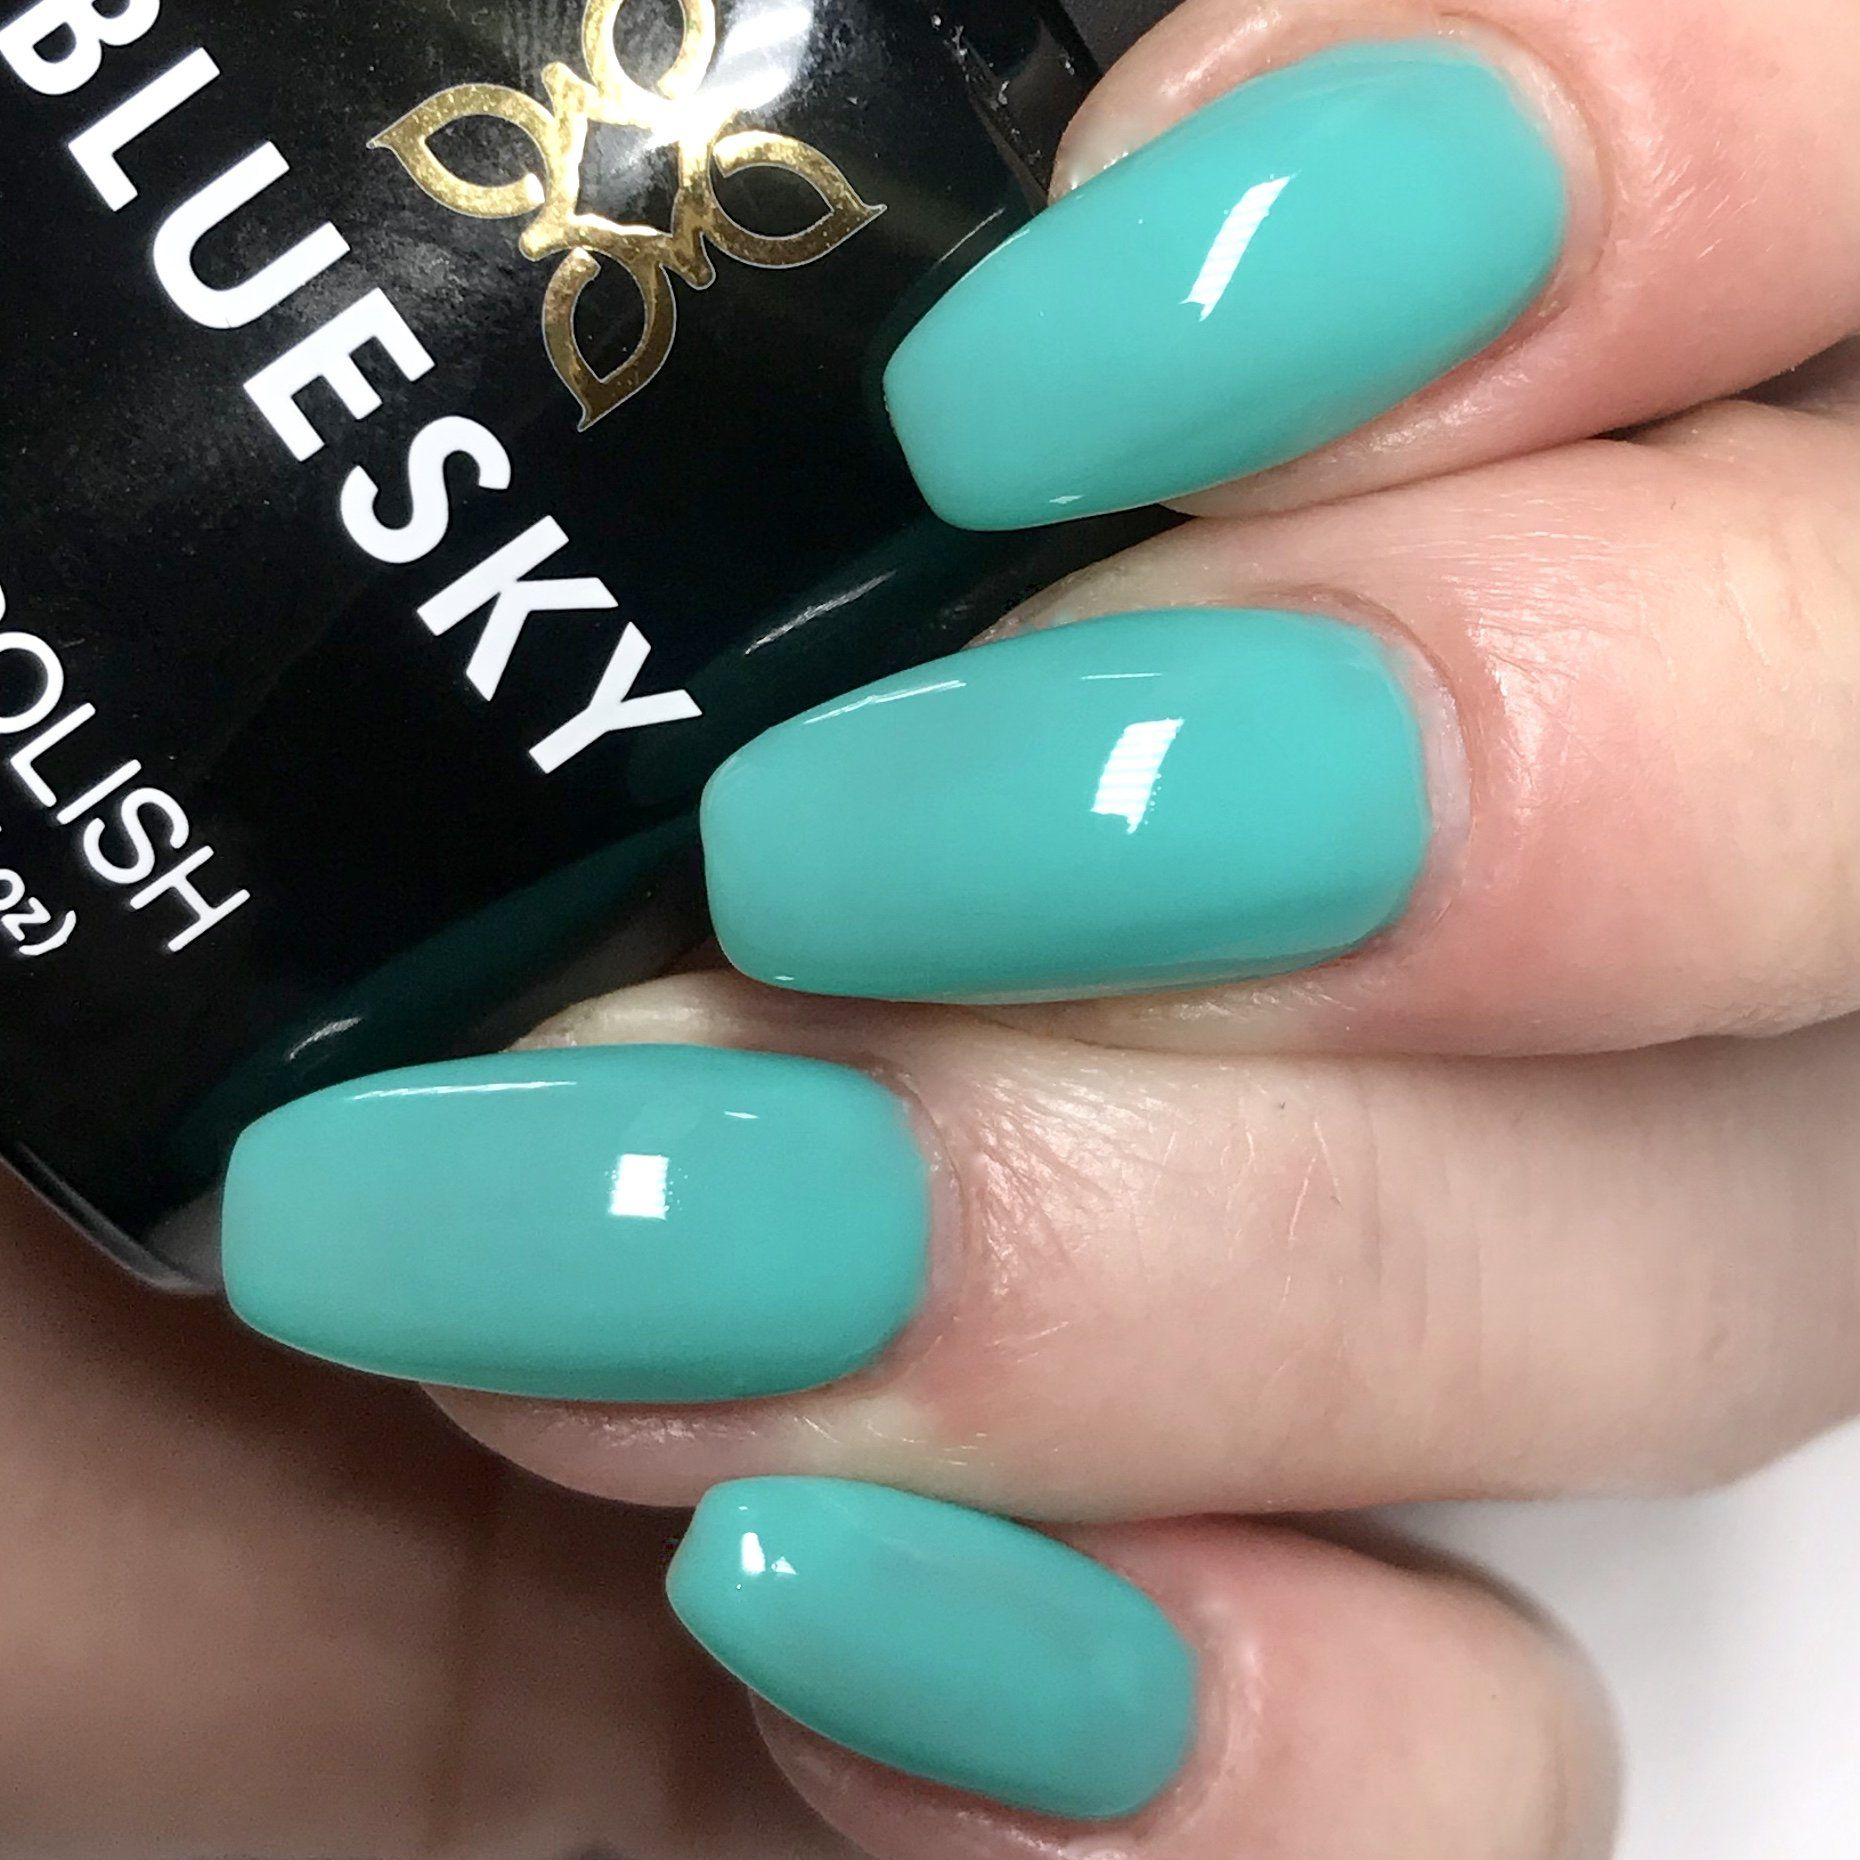 Bluesky PASTEL COLLECTION PA 06 UV/LED Soak Off Gel Nail Polish 10ml Free P&P - Bluesky Nail Gel Polish